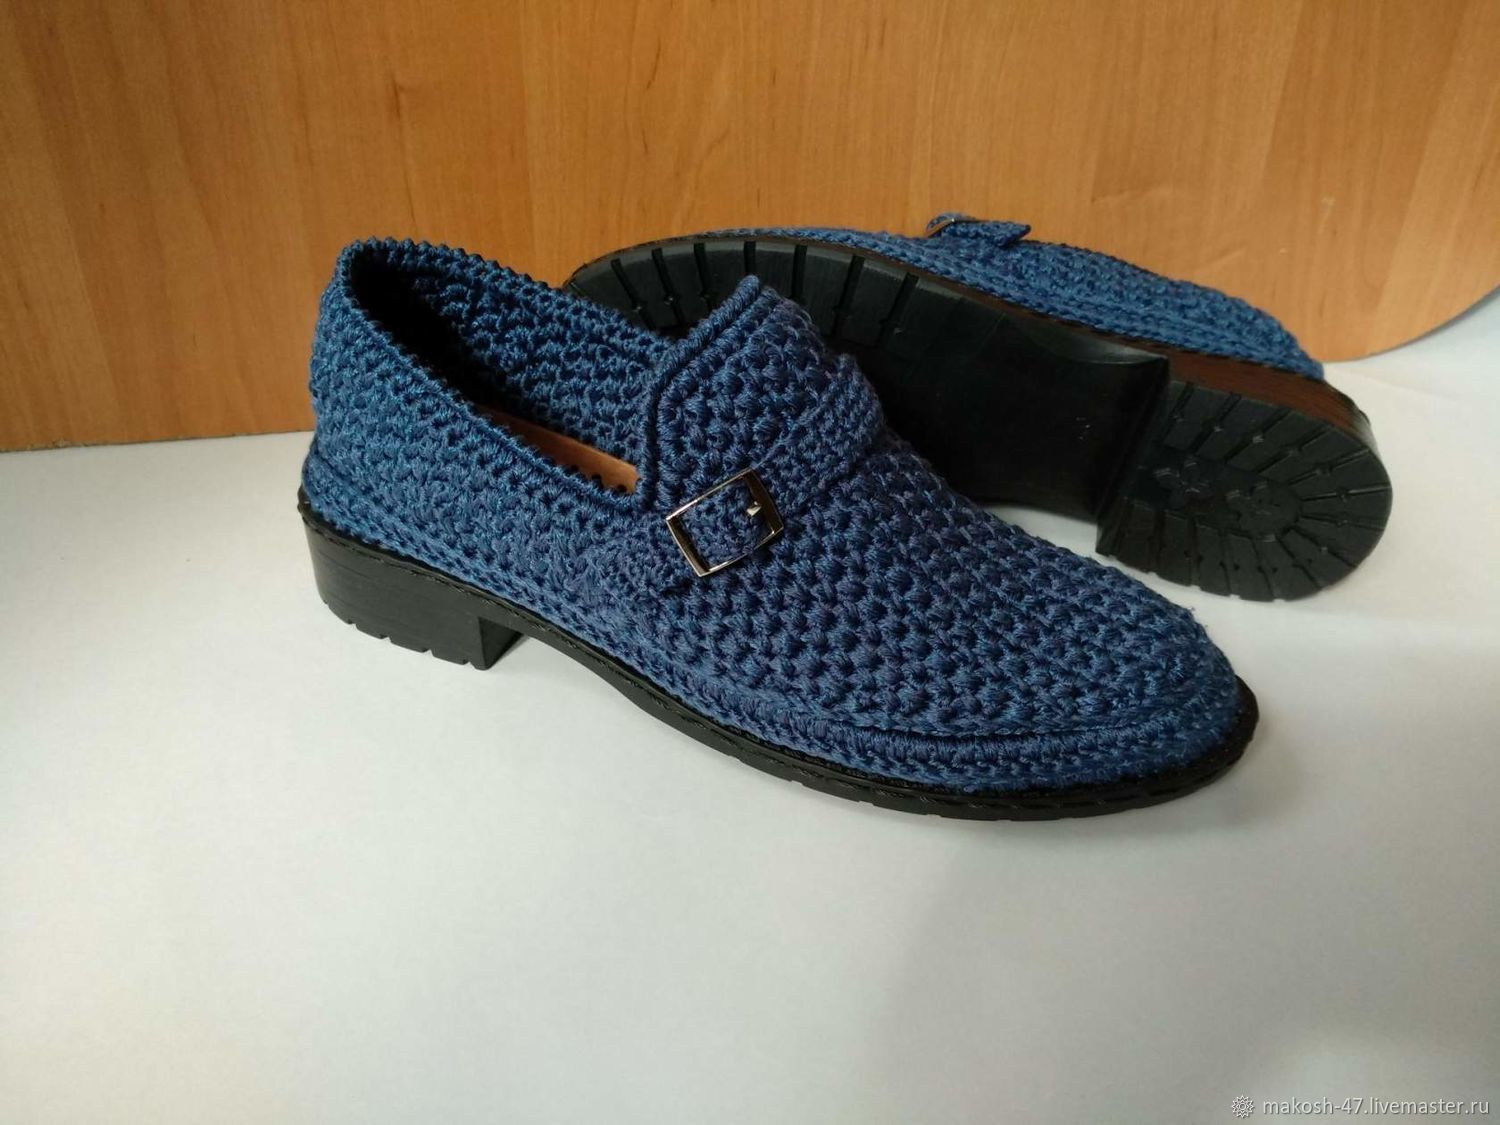 9d86a7682a21a Knitted men's moccasins ( cotton with viscose ) color - marine – shop  online on Livemaster with shipping - IIU75COM | Vyazniki